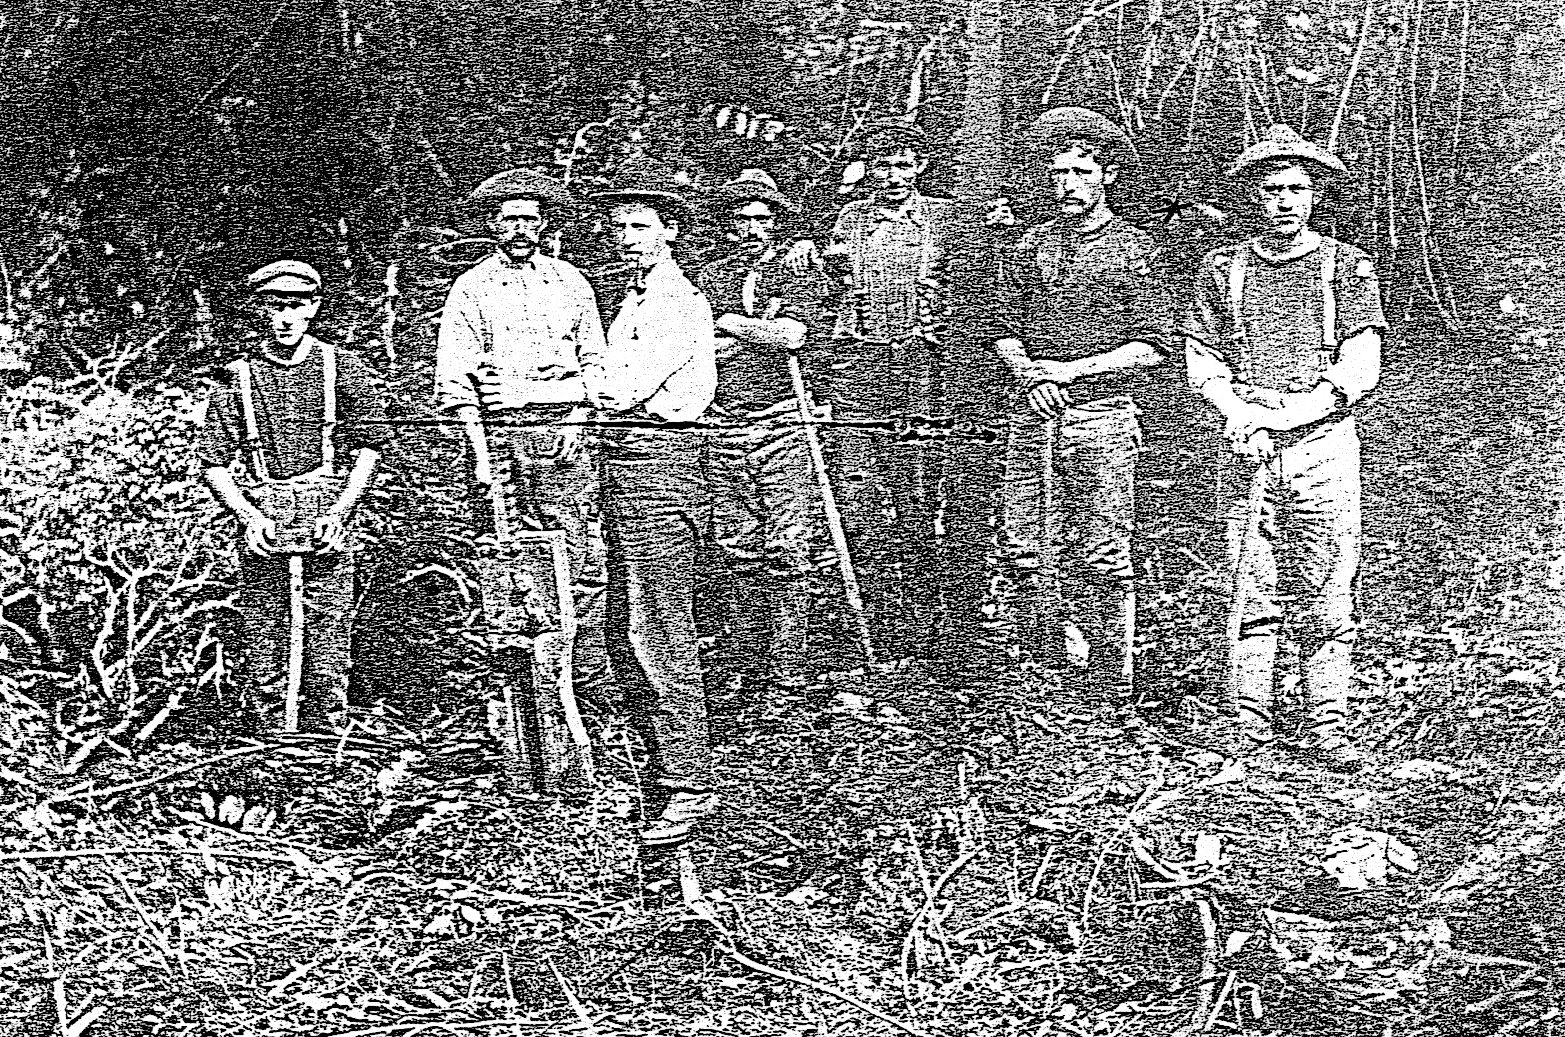 John and  Joe Crofskey with a group of tree fellers